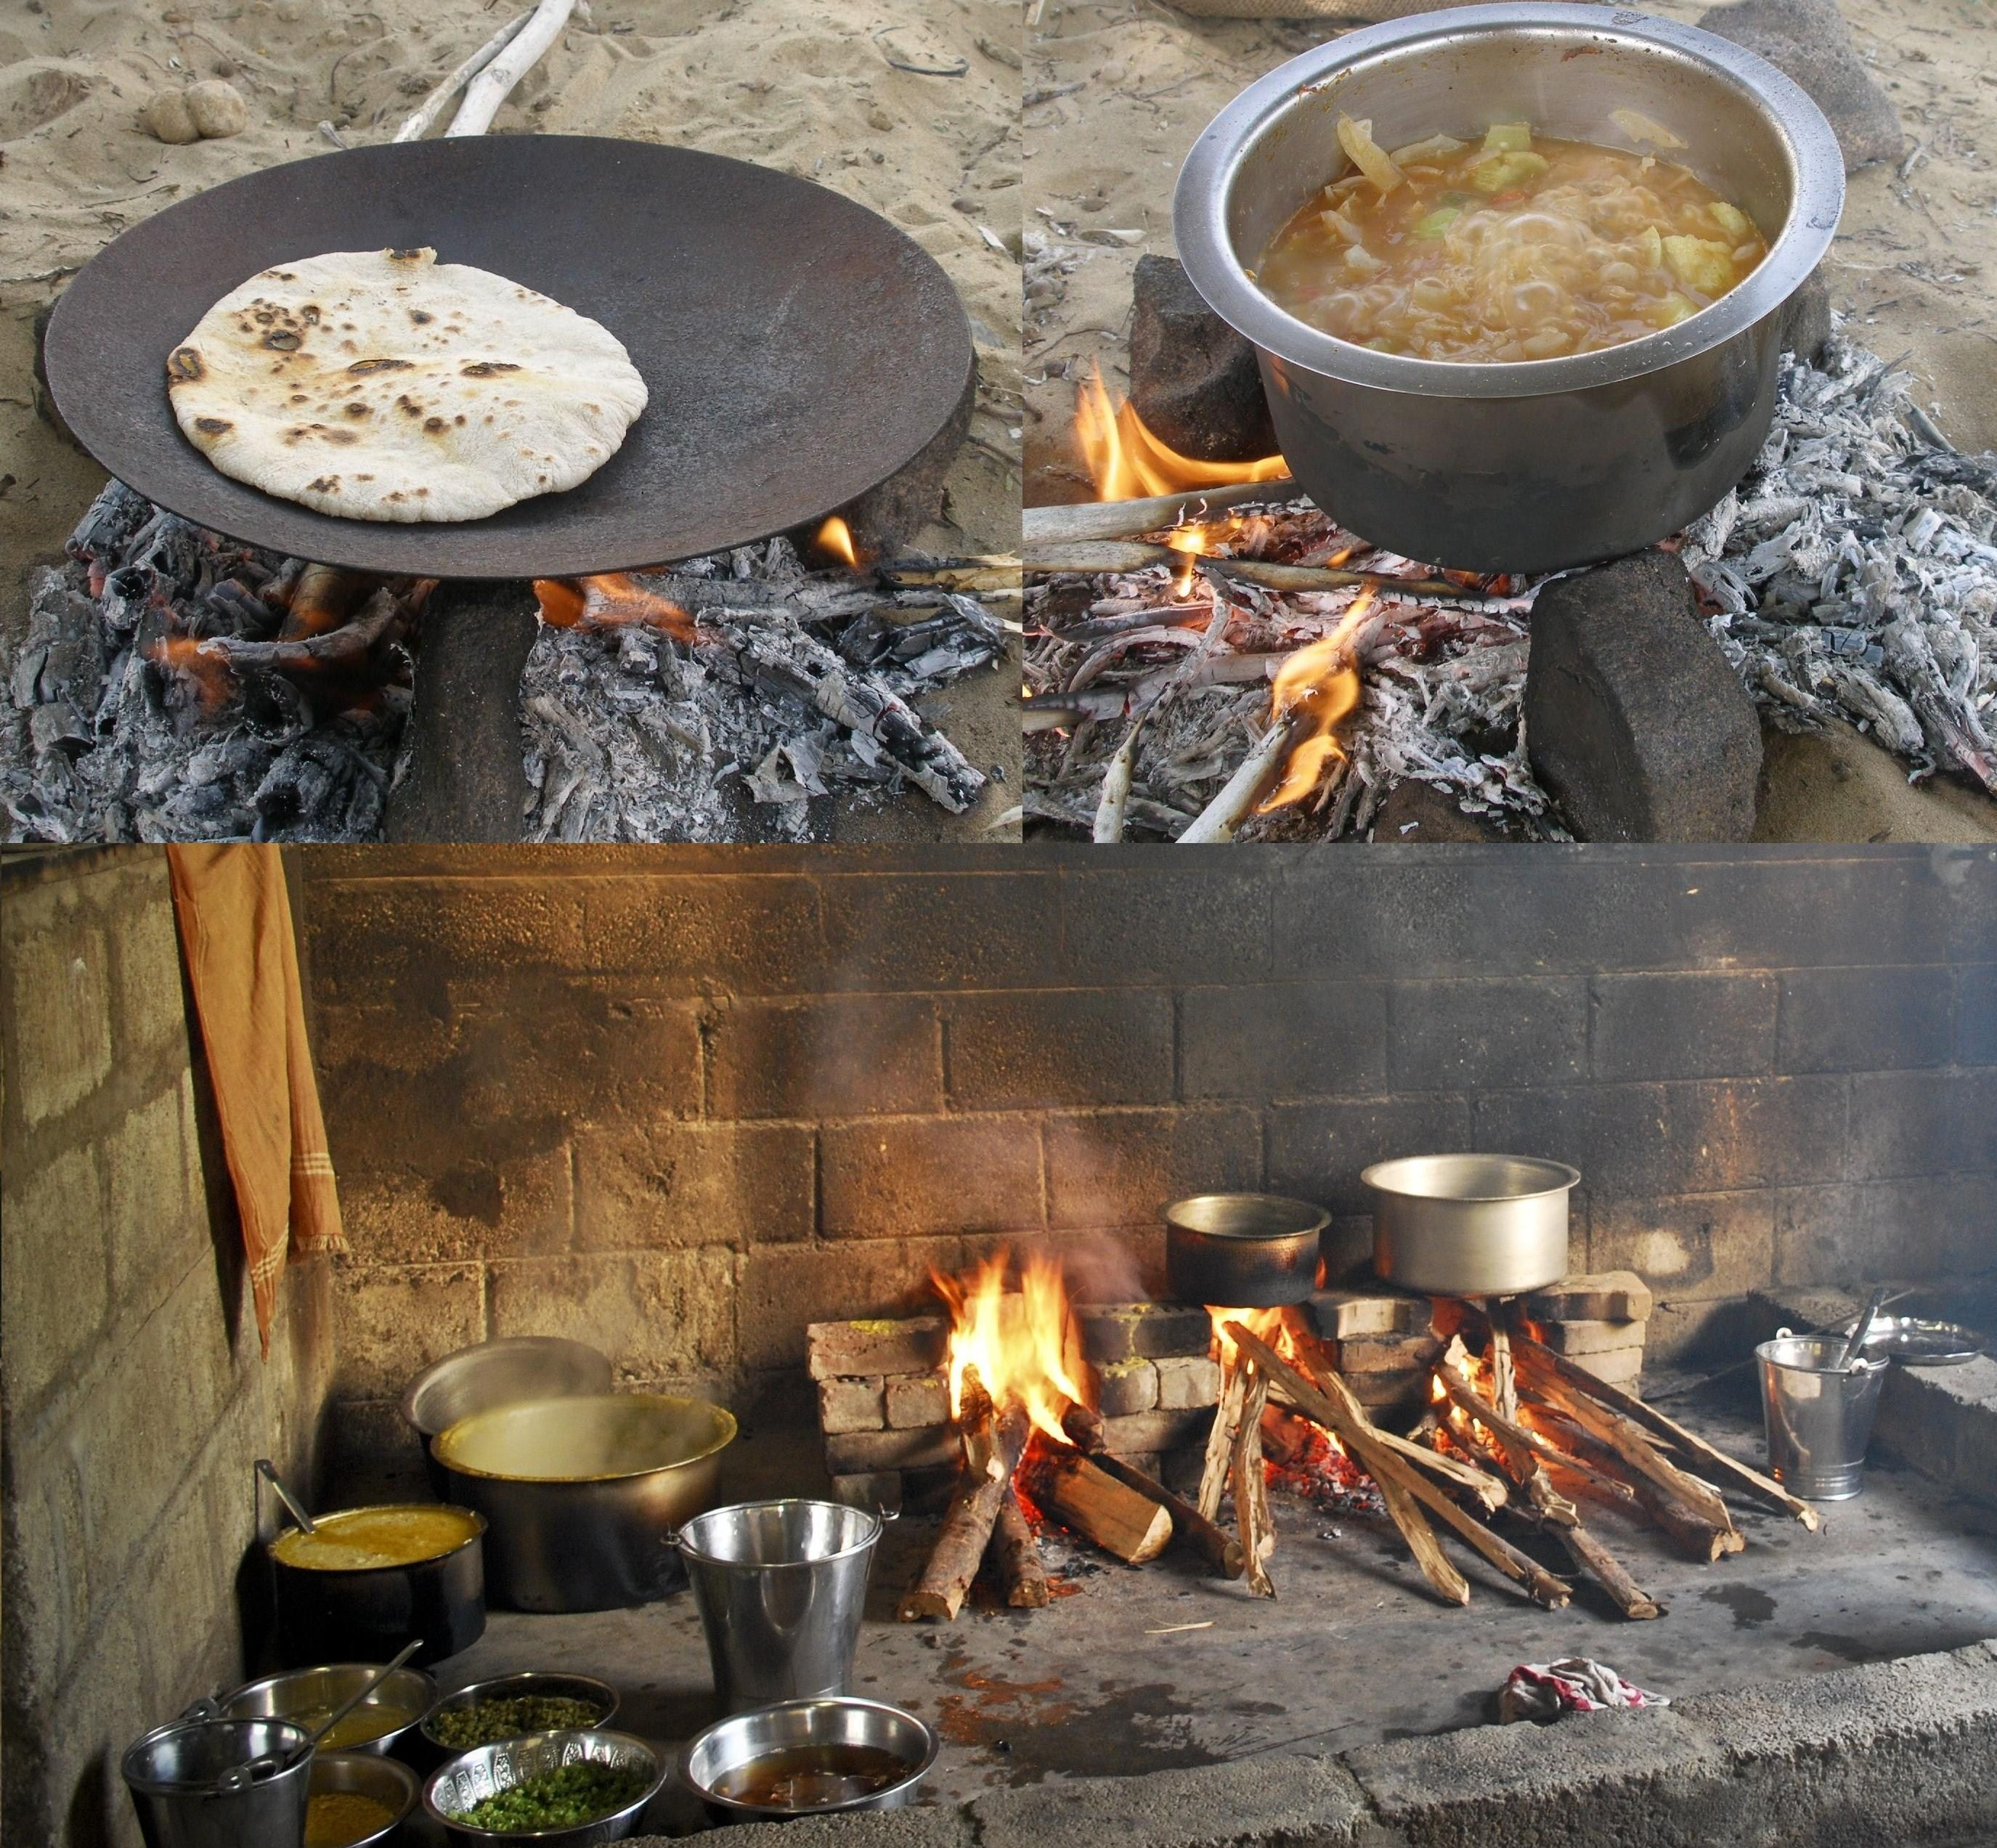 Traditional outdoor Indian cooking in the Thar Desert in Jaisalmer, showing  roti bread and vegetable